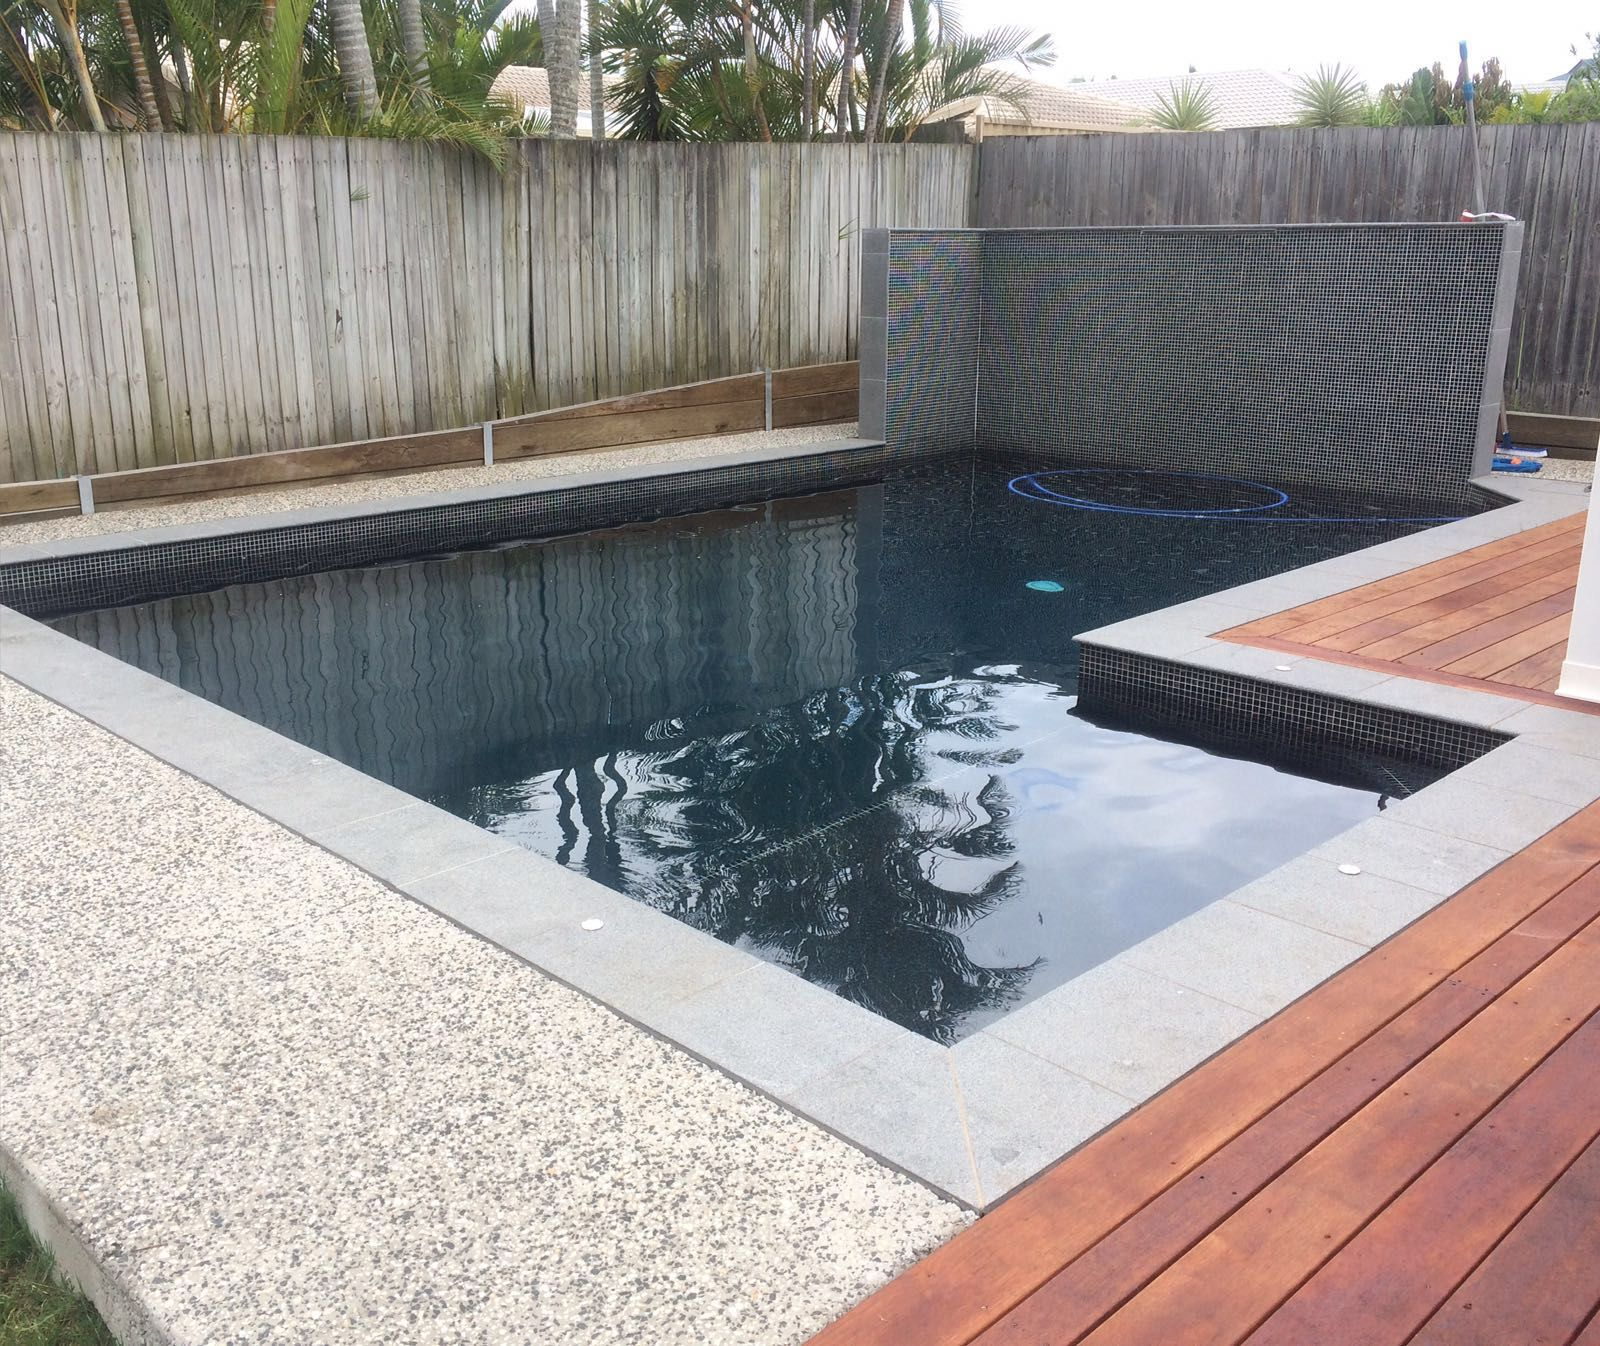 Diy Concrete Block Soaking Pool In Progress Advice Welcome Diy Swimming Pool Small Pools Small Backyard Pools